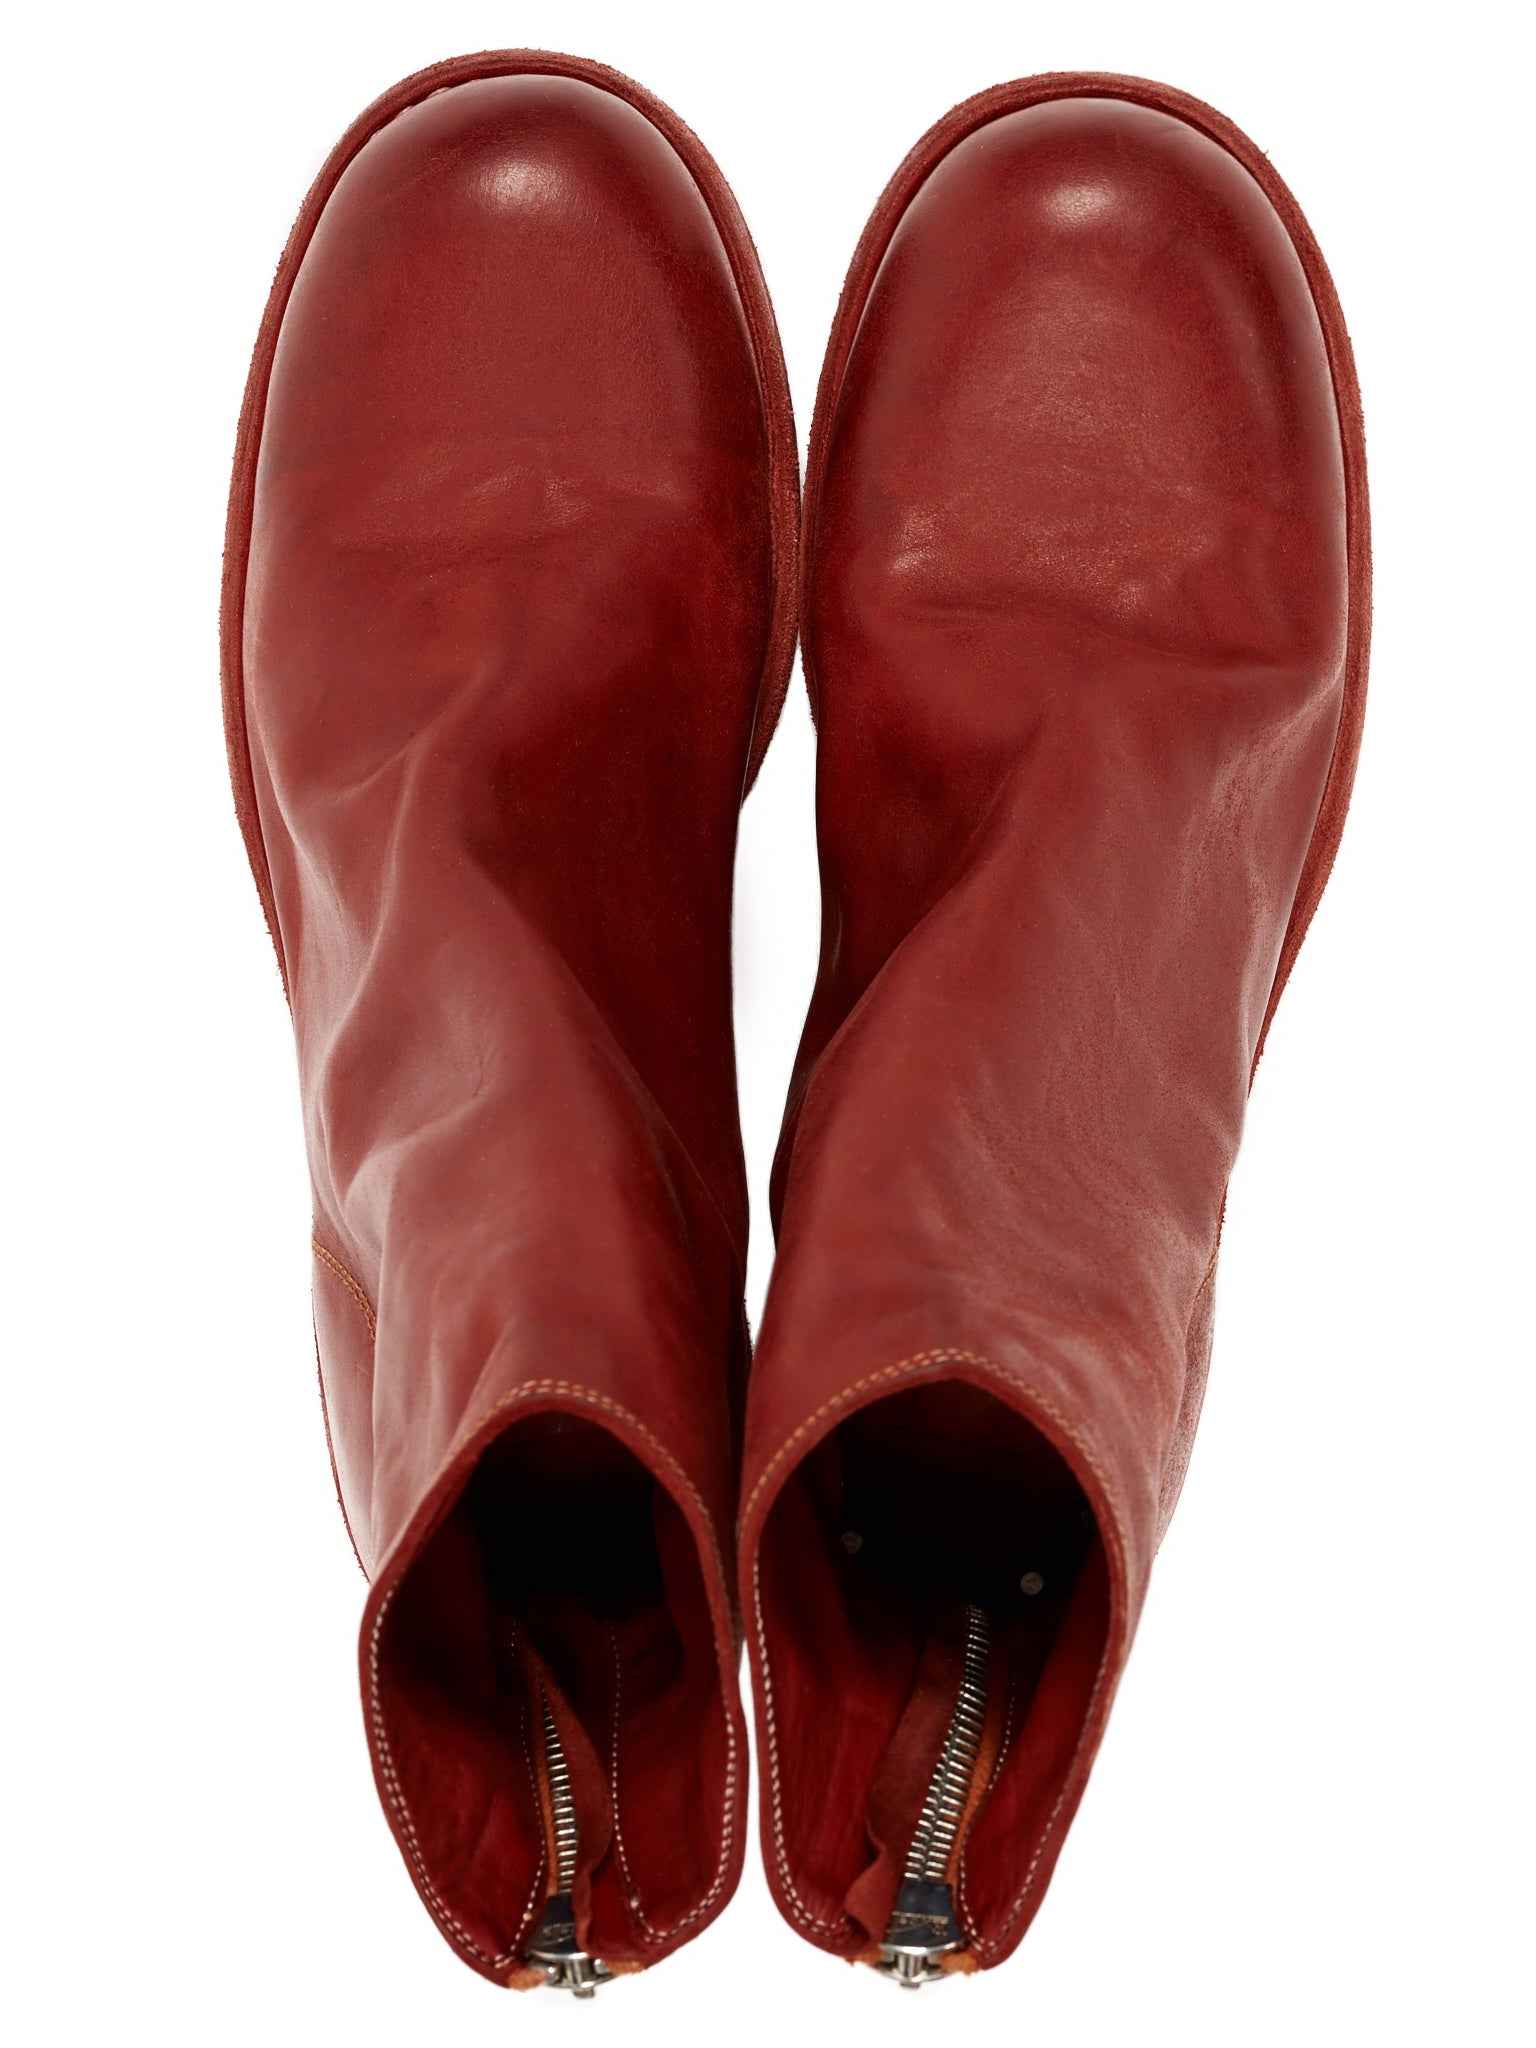 796Z Soft Horse Leather Boots (796Z-SOFT-HORSE-FG-RED)